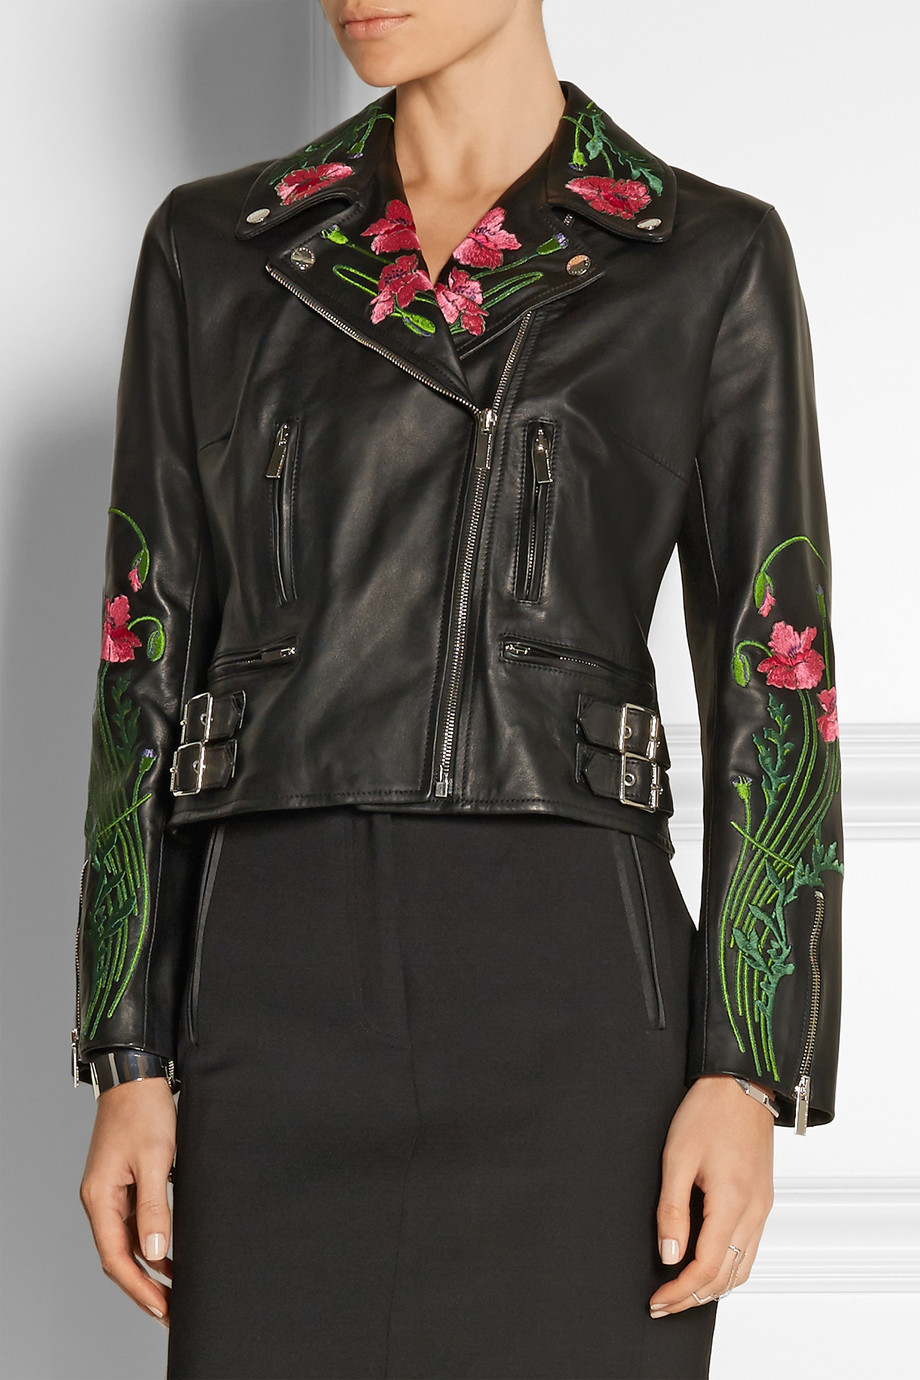 Shop The Fall 2015 Embroidered Jackets Trend U2013 The Femininity Mystique